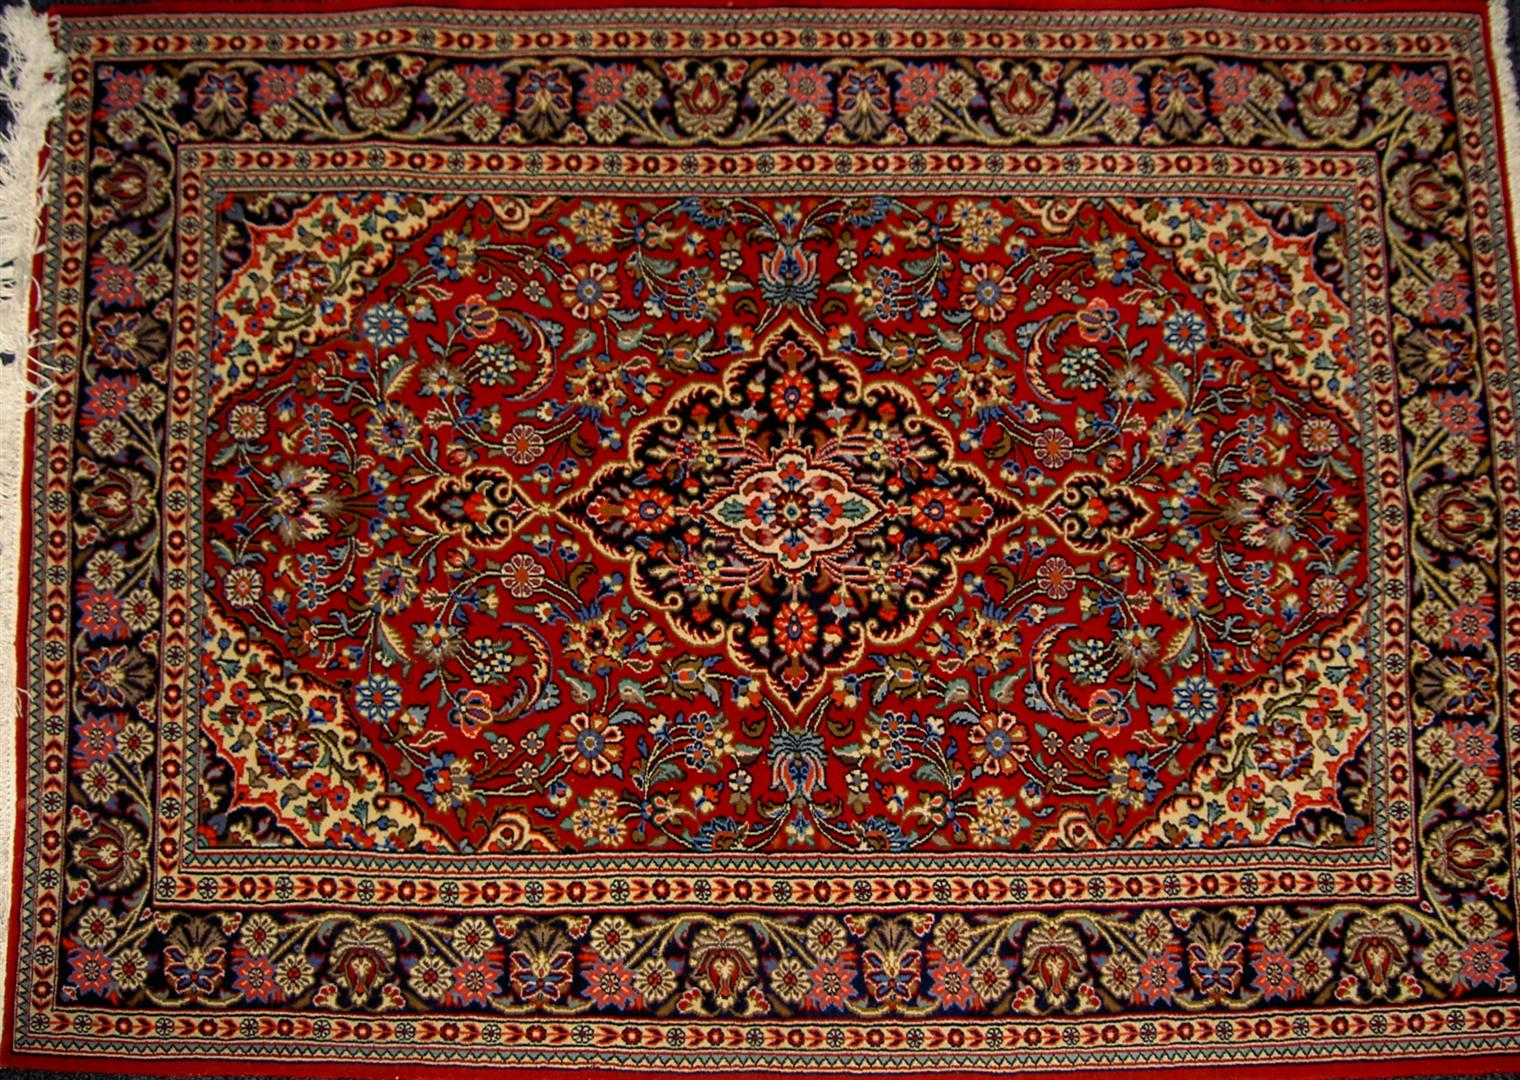 rug master rugs from iran part i. Black Bedroom Furniture Sets. Home Design Ideas